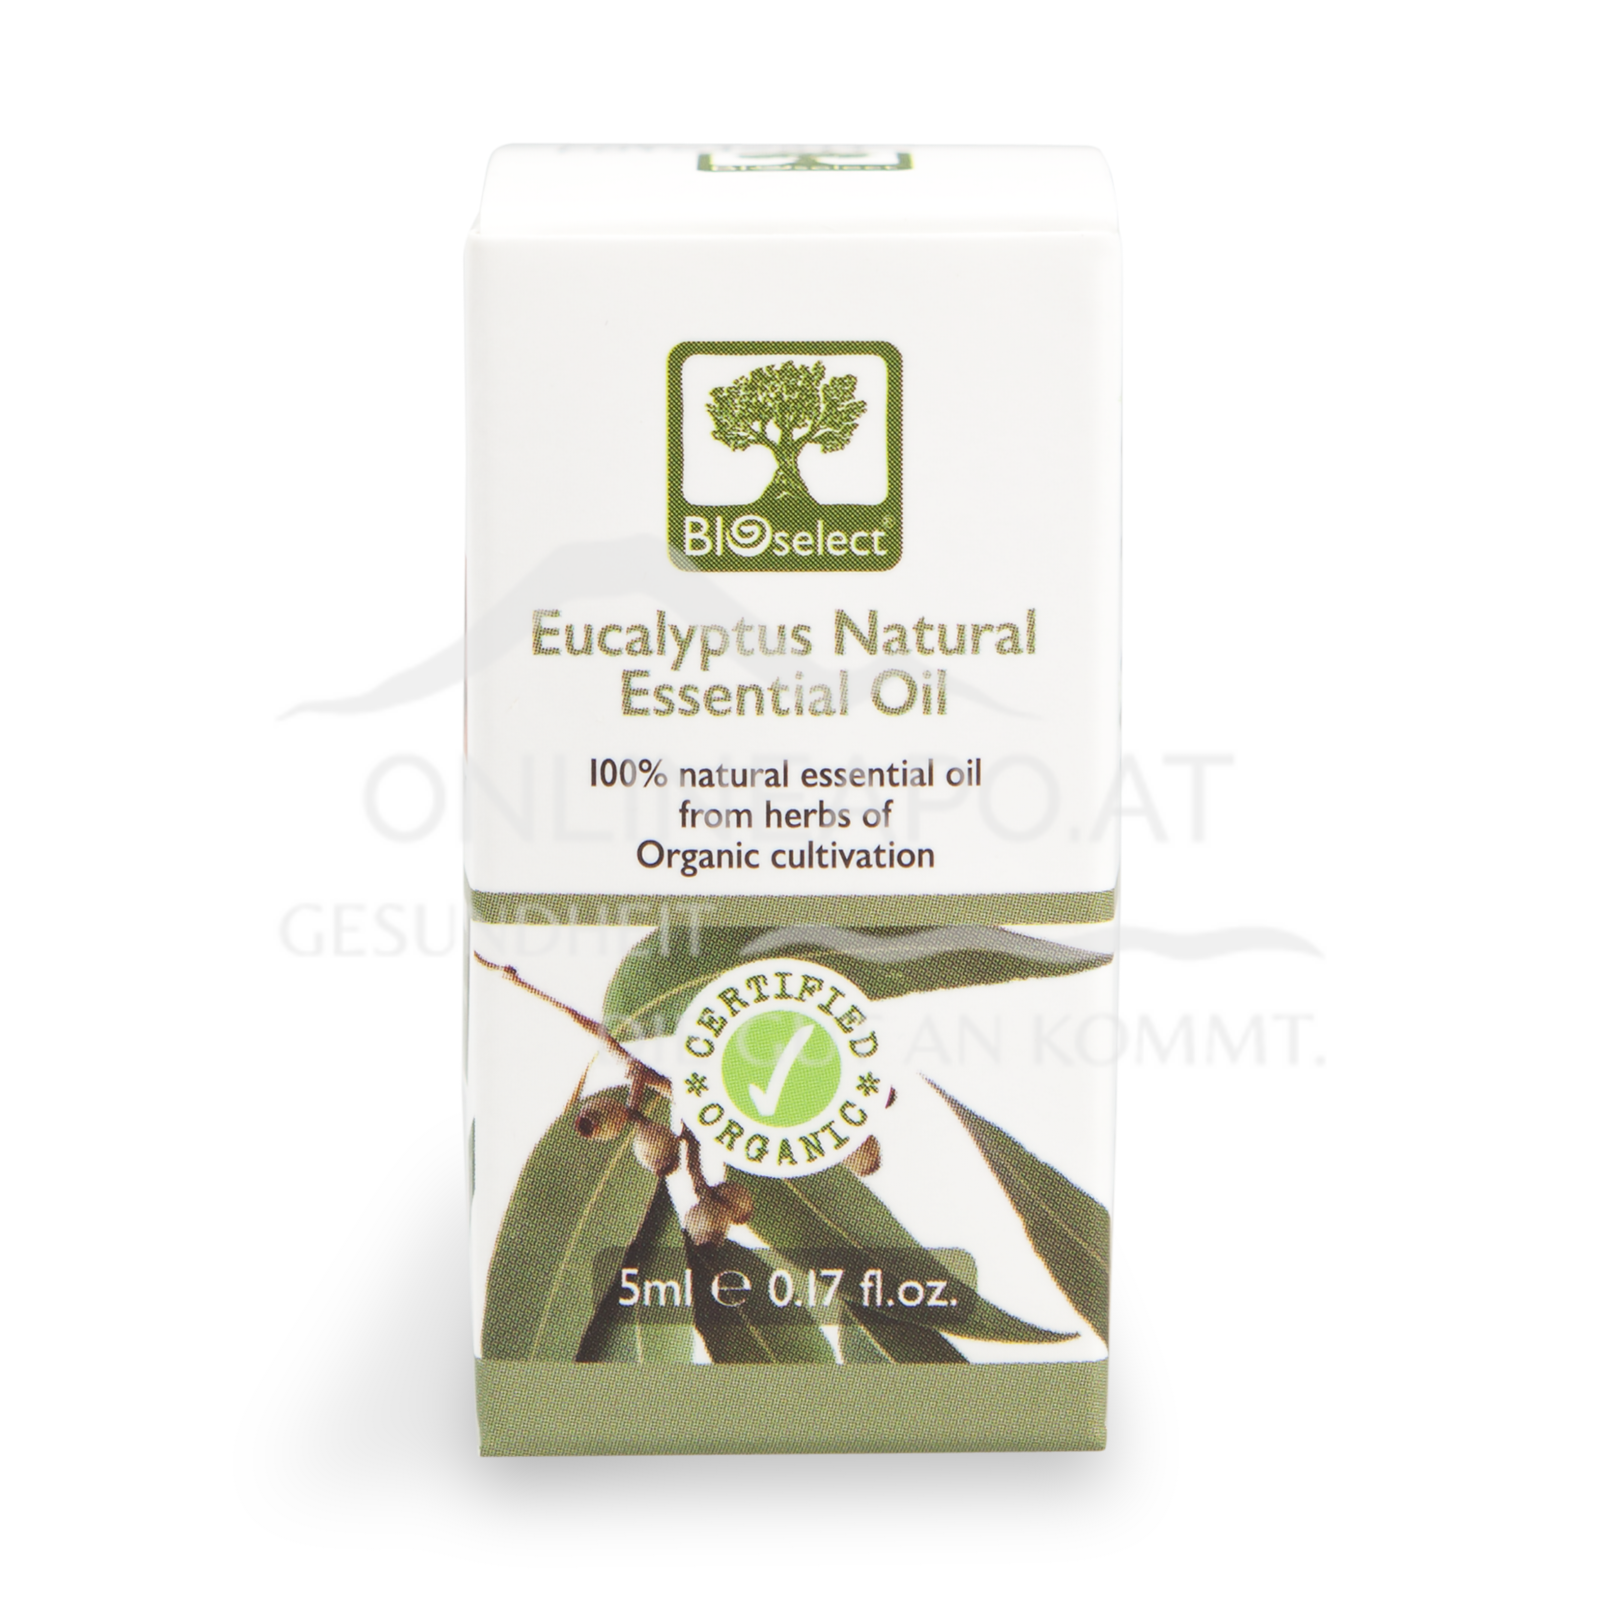 Bioselect Eucalyptus Natural Essential Oil Certified Organic